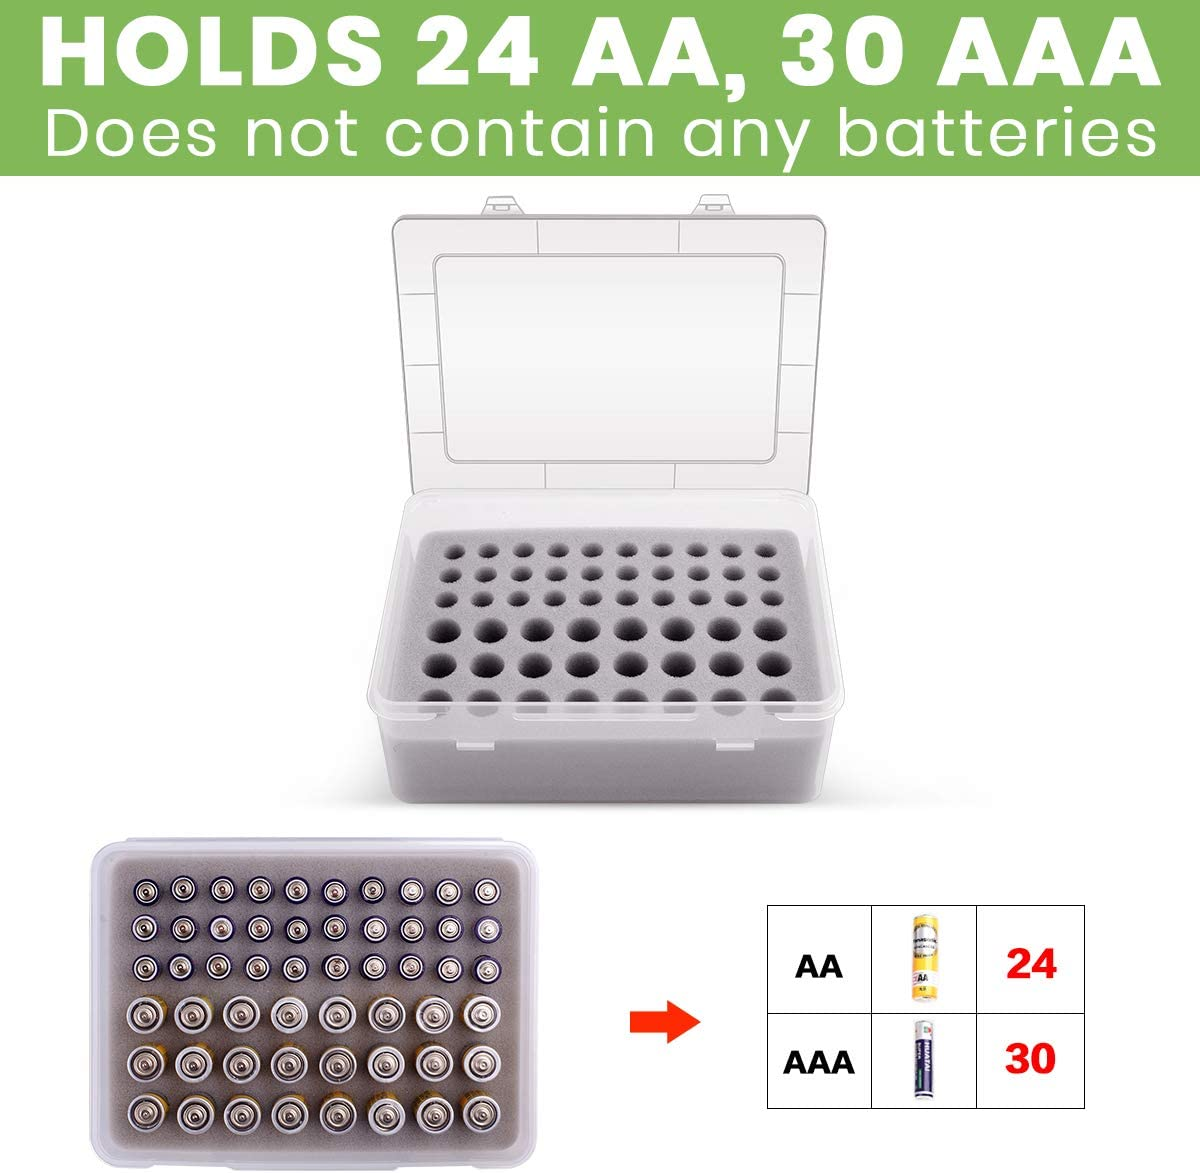 Battery Organizer Holder Batteries Storage Containers Box Case with Tester Checker BT-168 Garage Organization Holds Batteries 40 pcs AA 50 pcs AAA